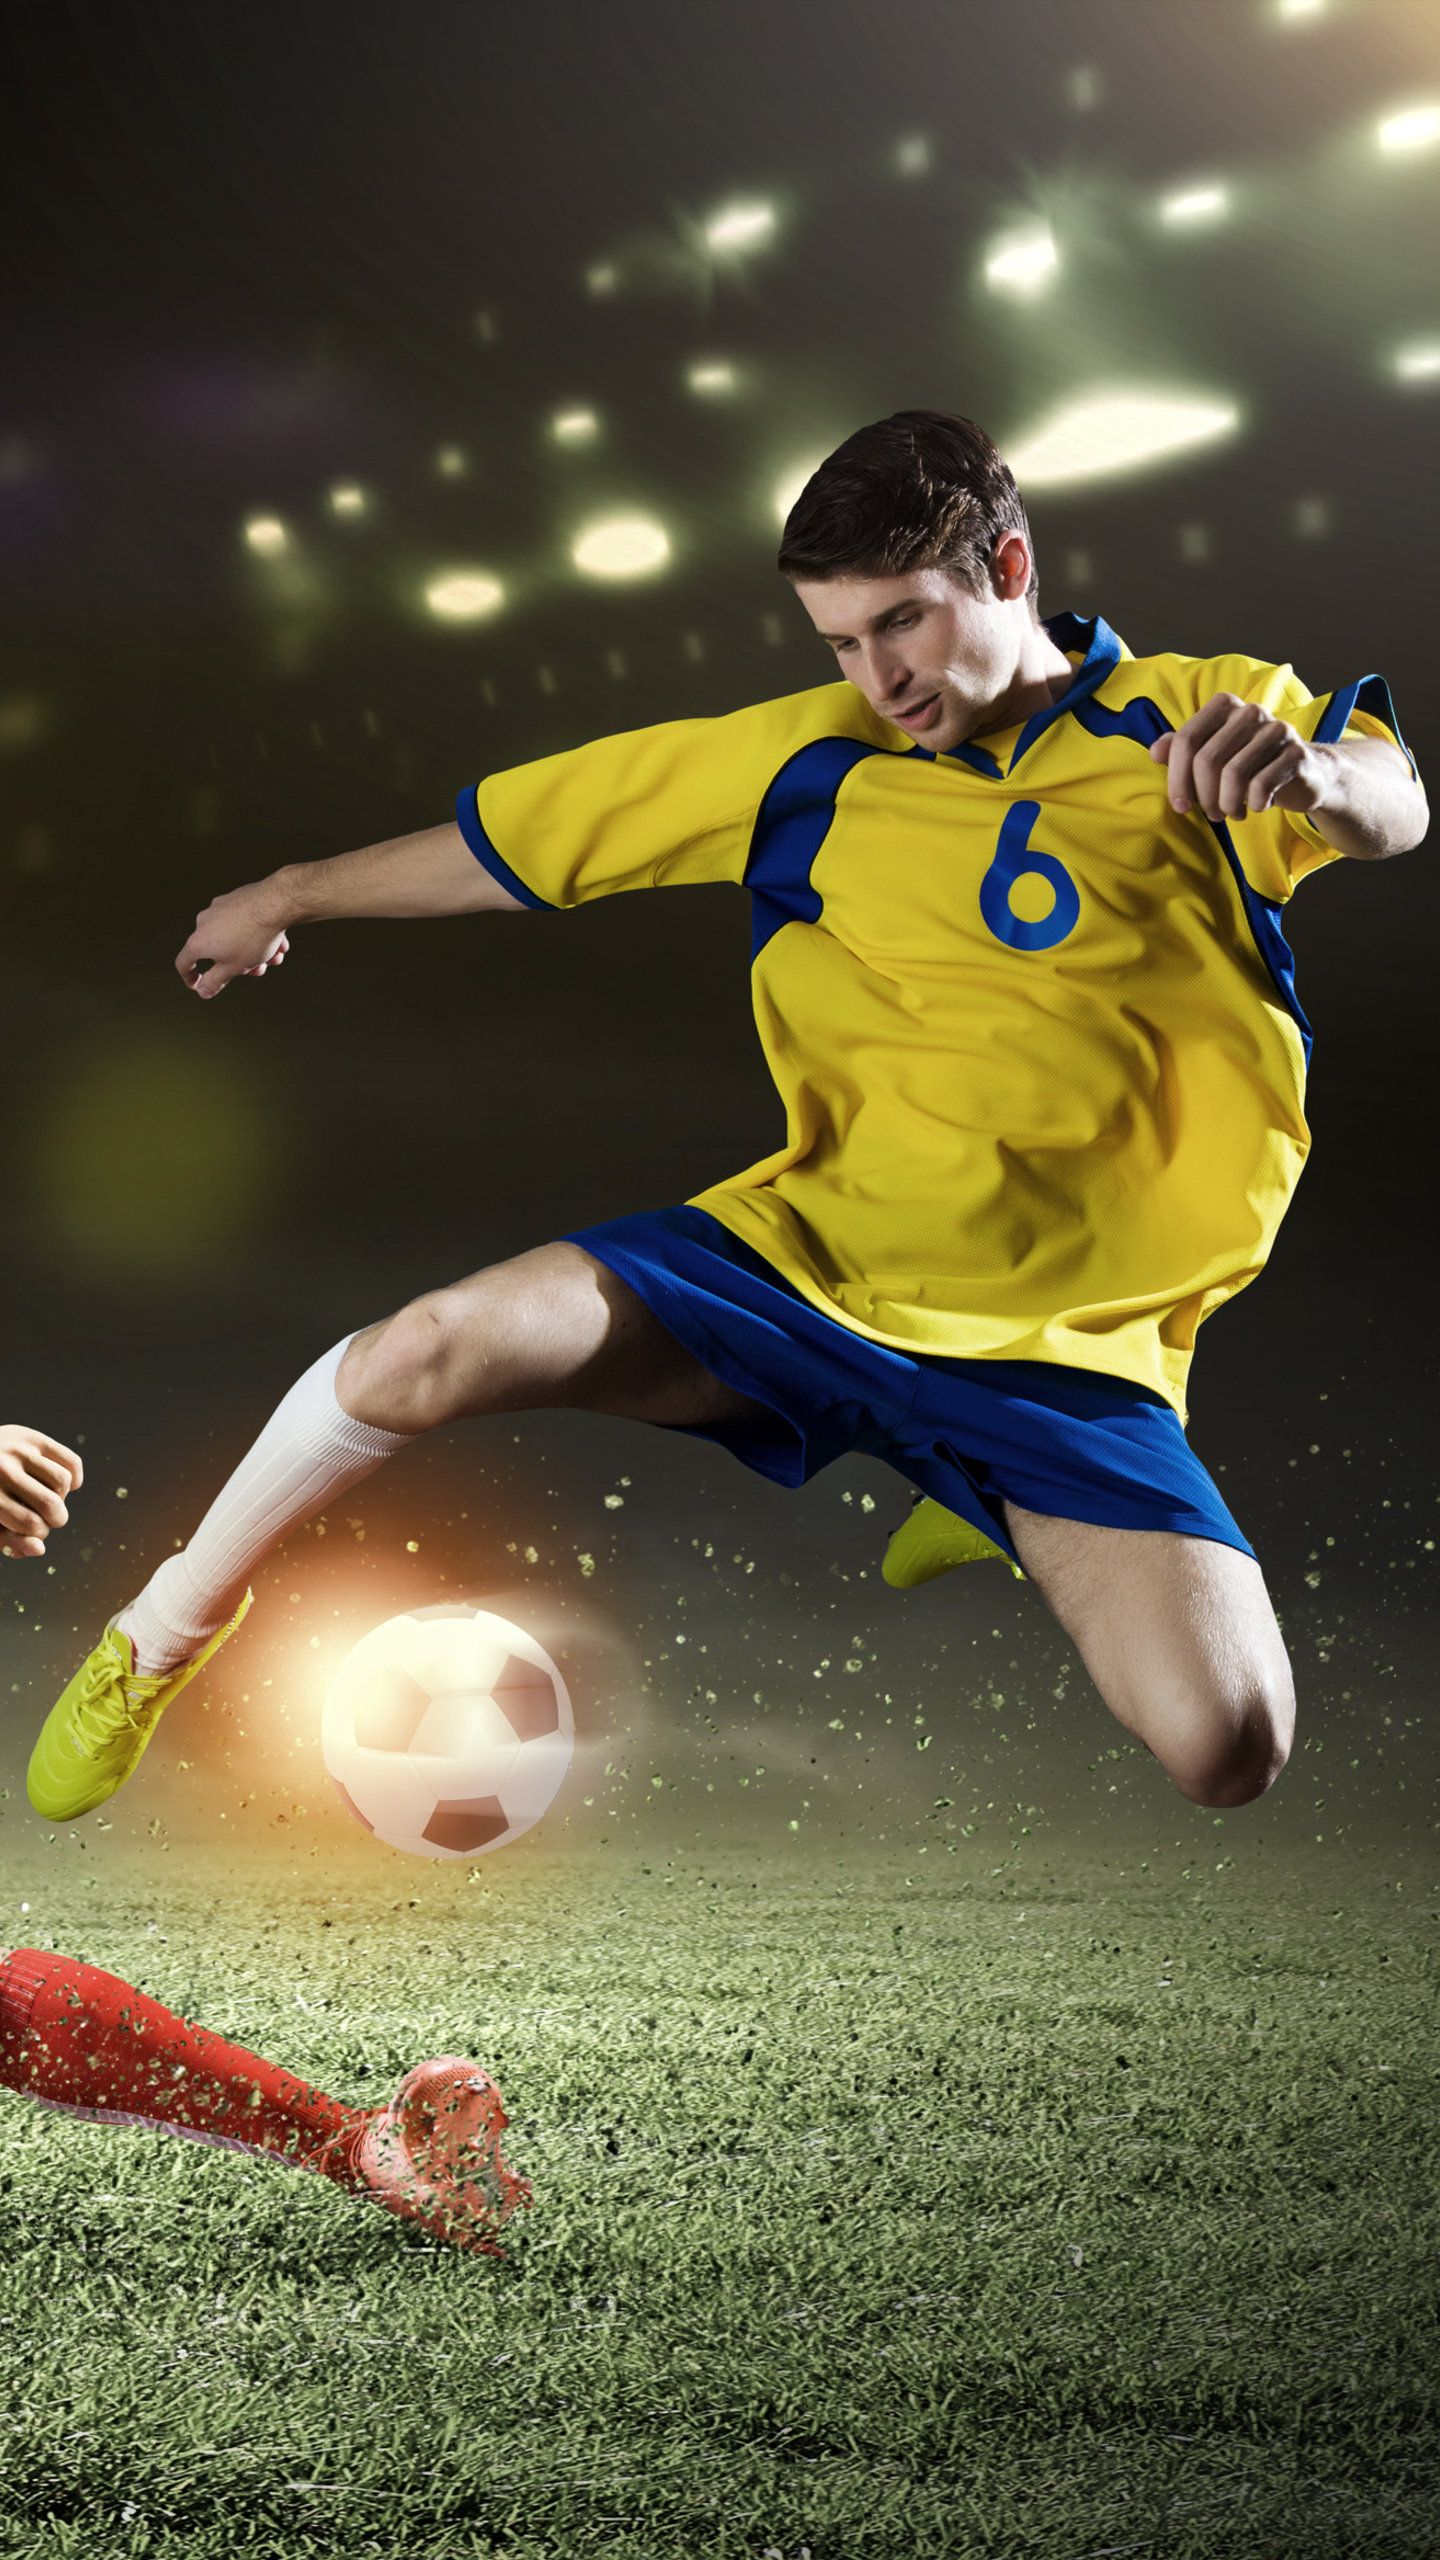 Soccer Players Football 4k Hd Sports Wallpapers Photos And Pictures Sports Wallpapers Sports Soccer Players